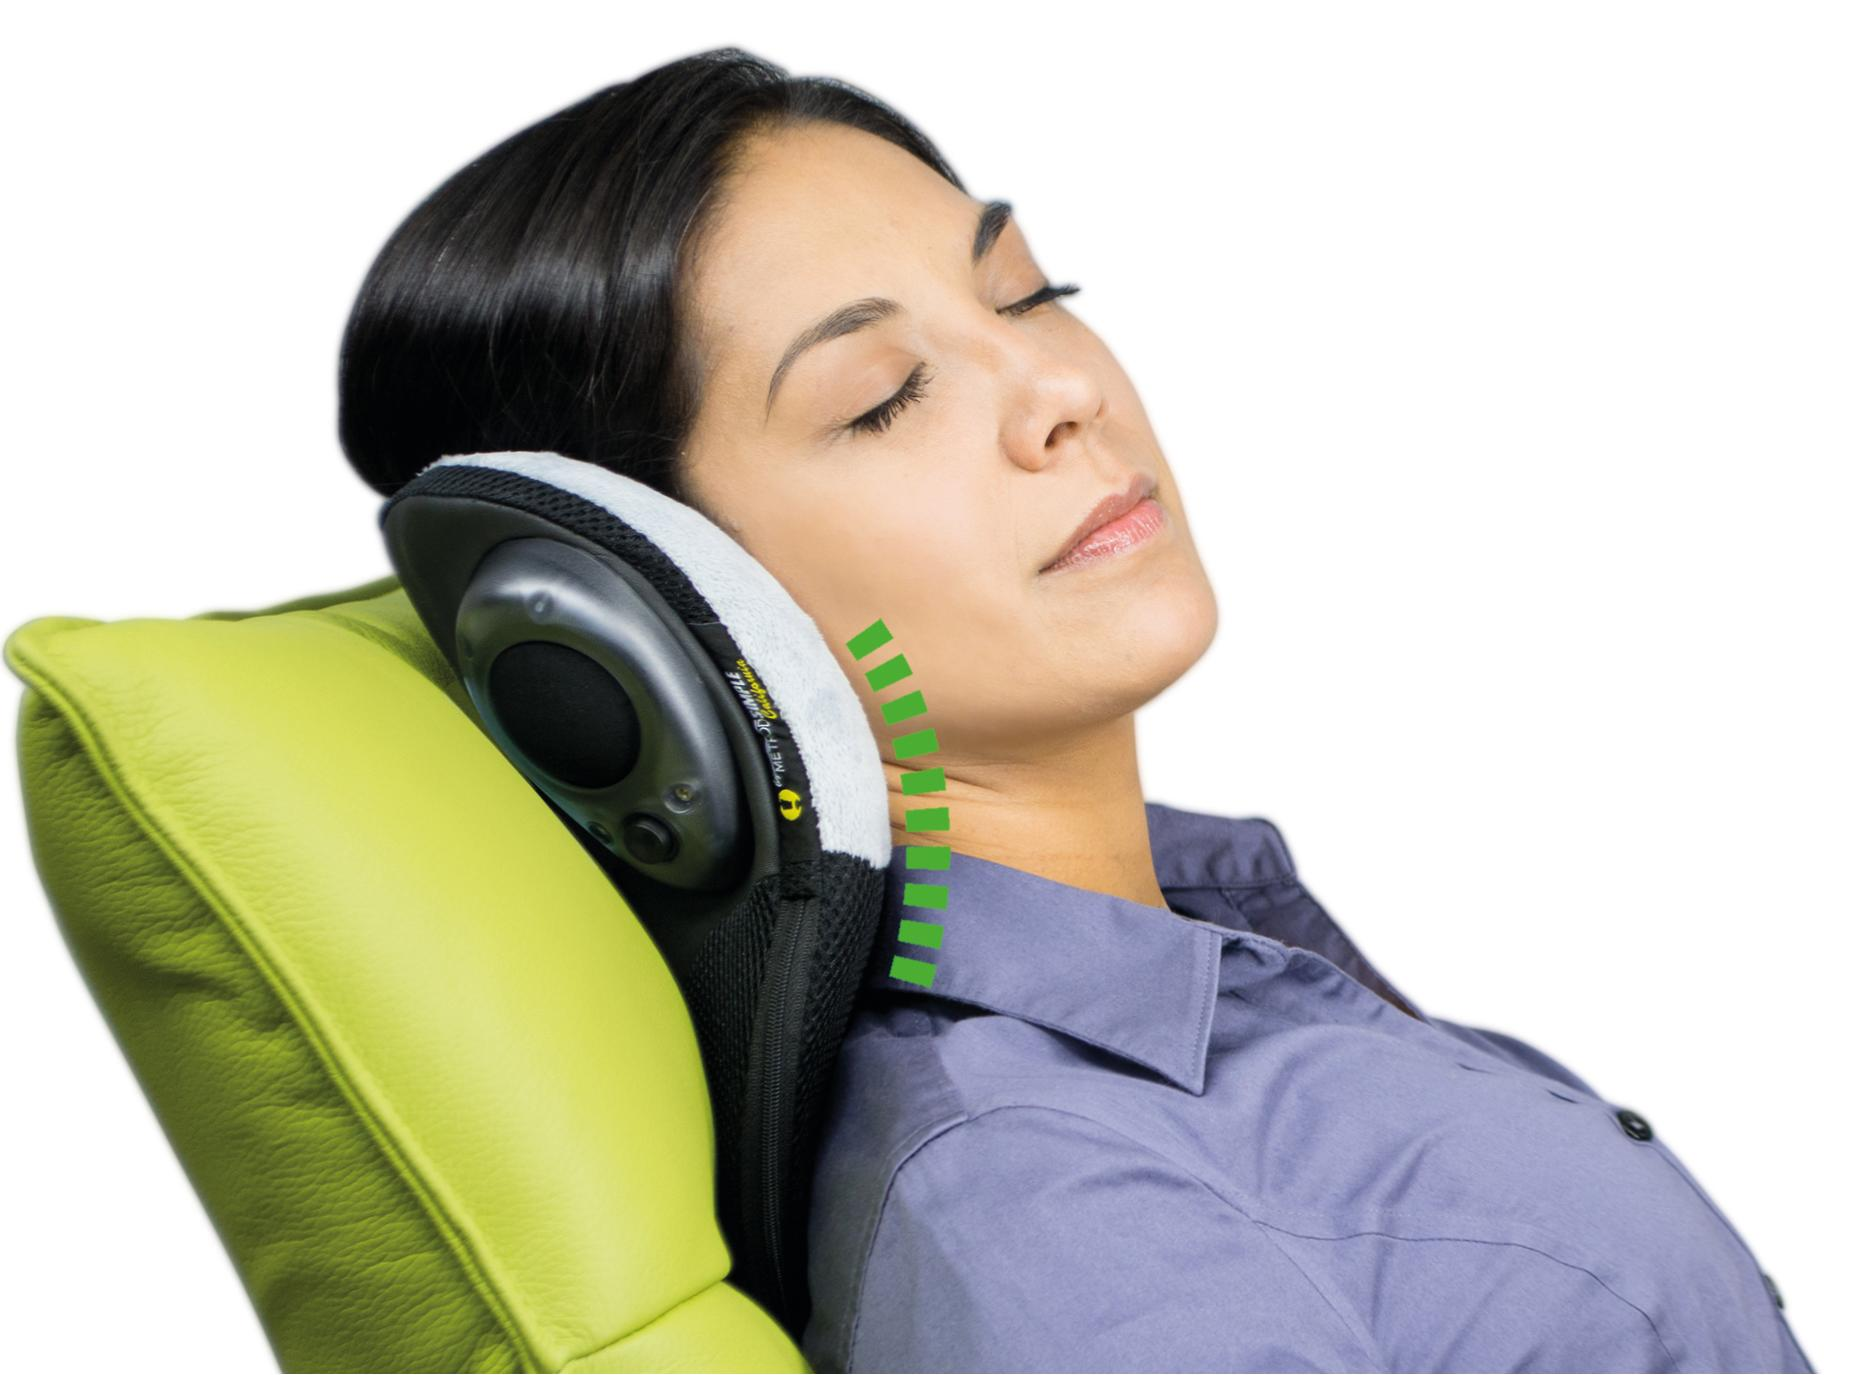 Get Better Sleep Neck Support And Posture With Arc4life